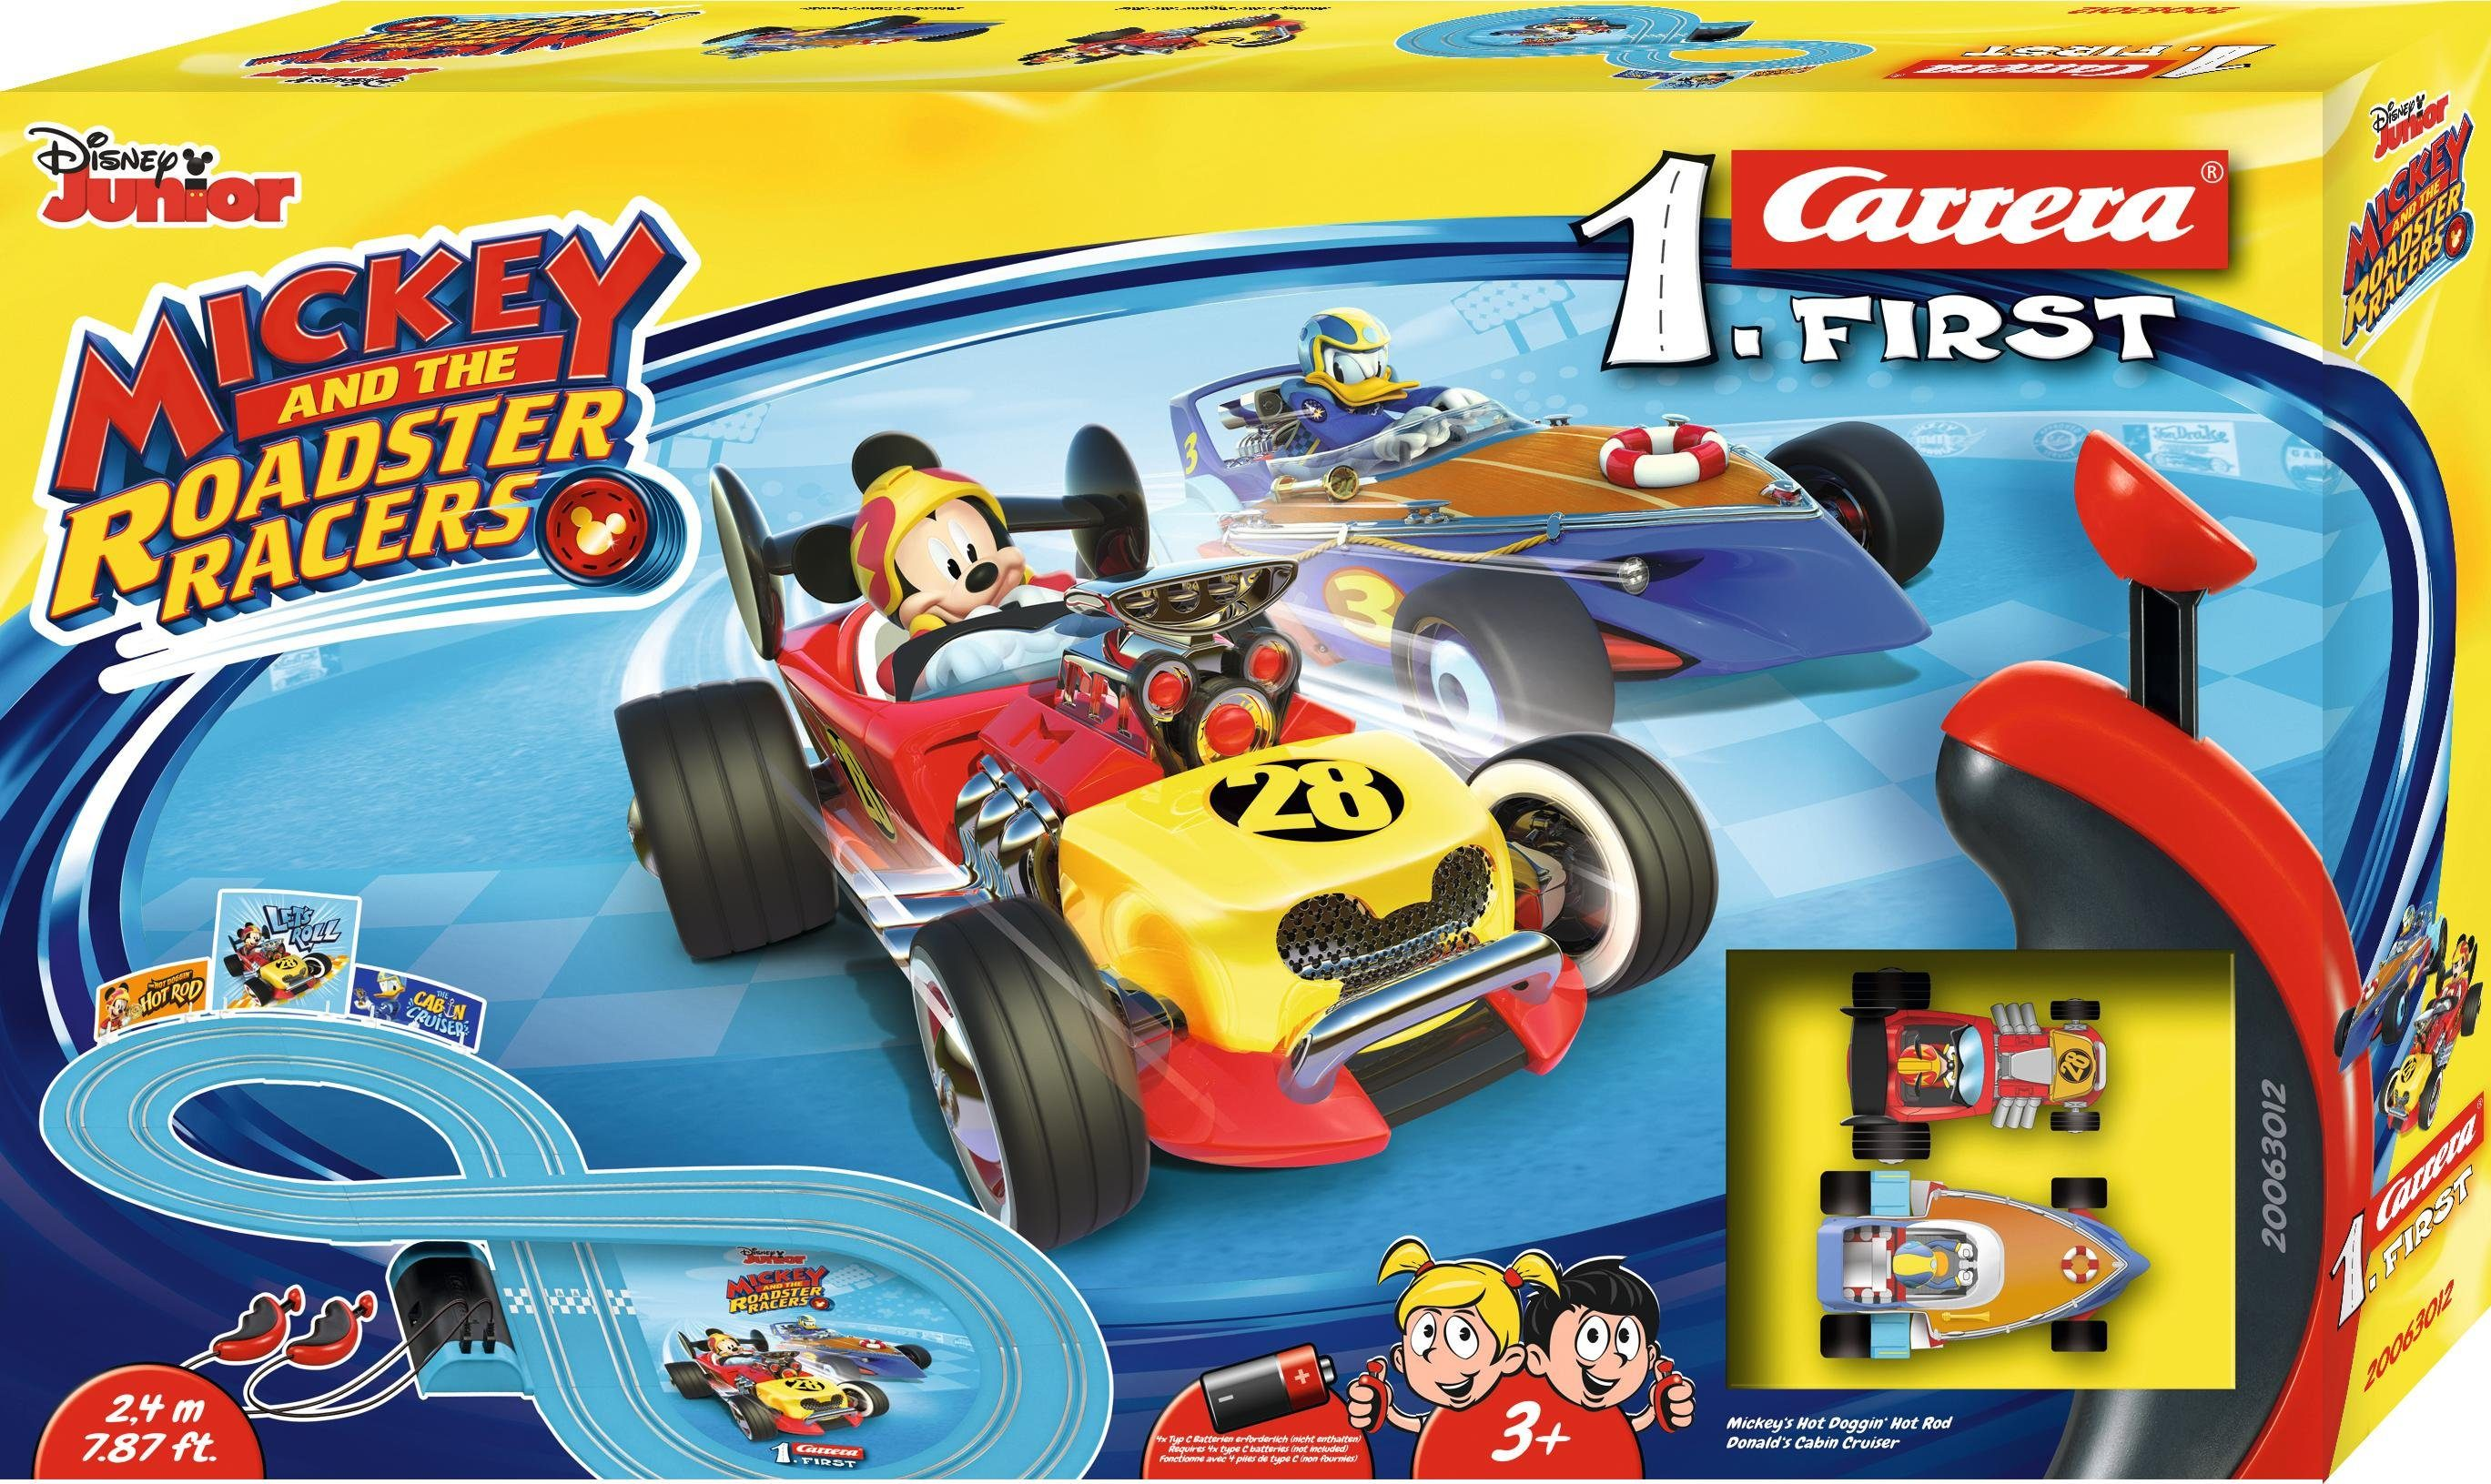 Carrera Autorennbahn für Kinder, »Carrera® First Mickey and the Roadstar Racers«